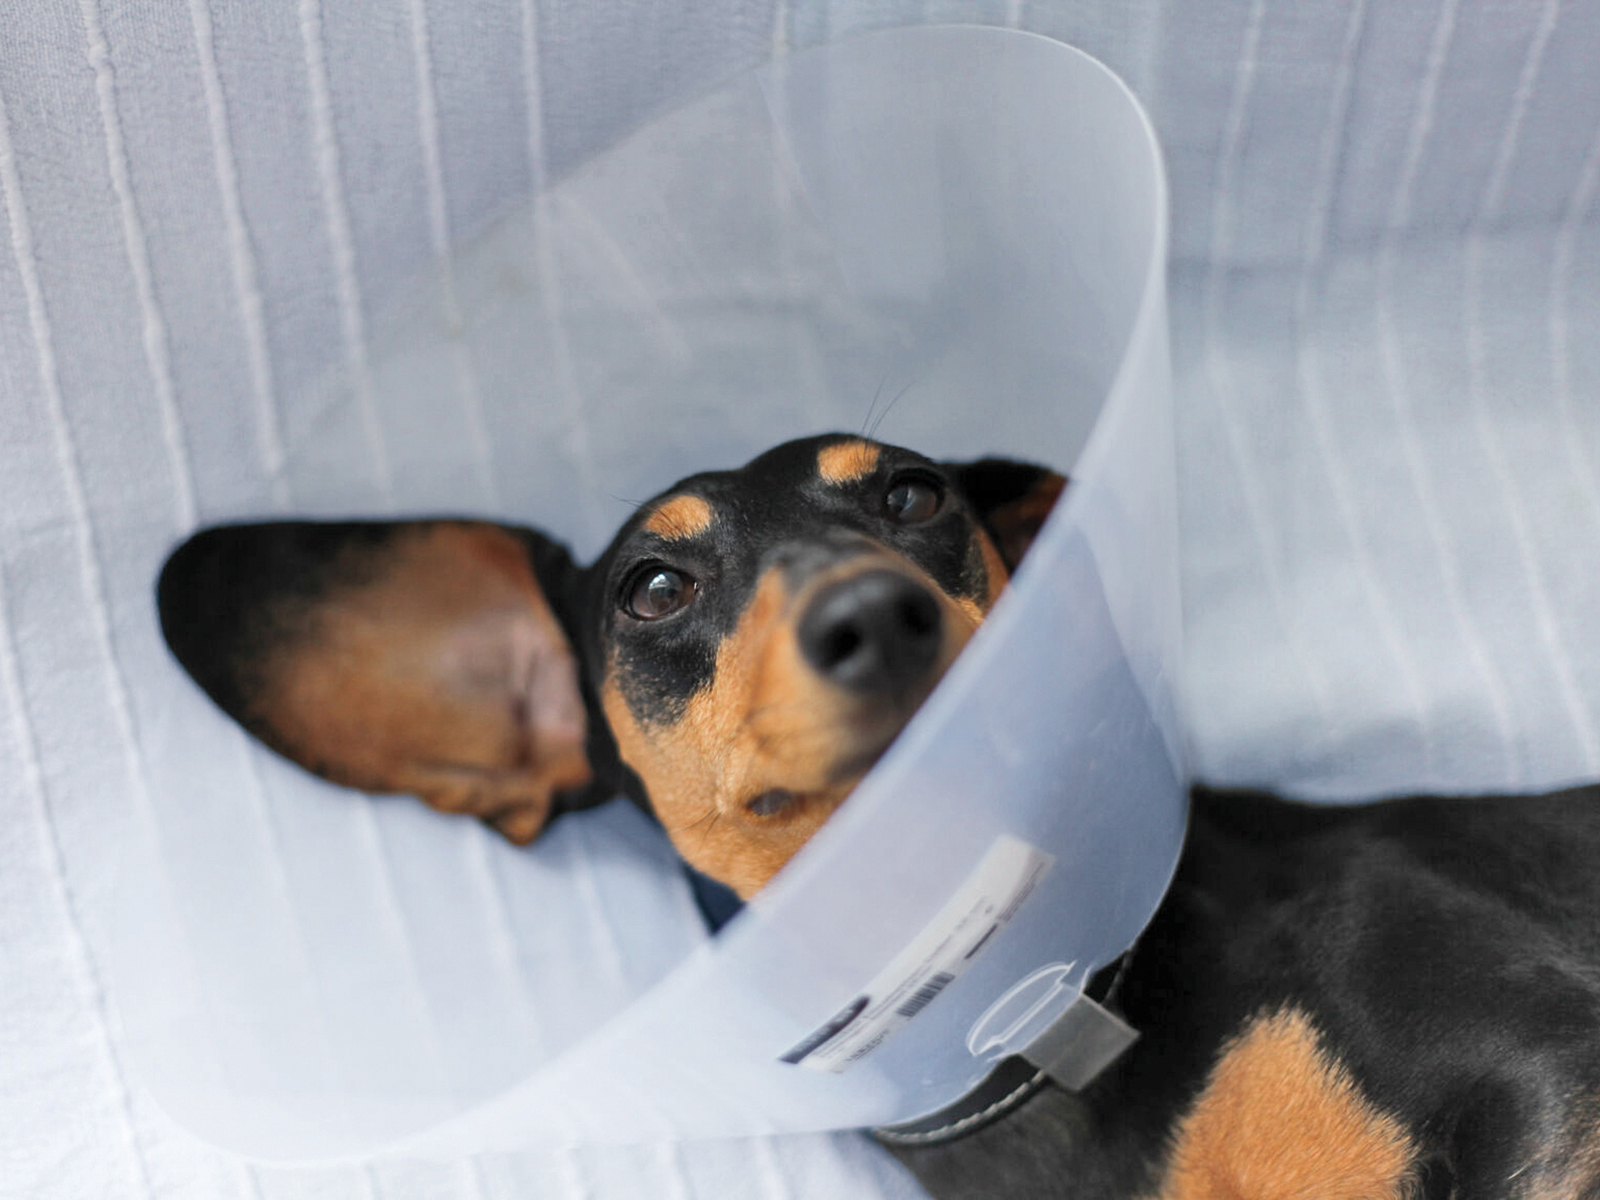 Dachsund wearing a cone post-medical procedure